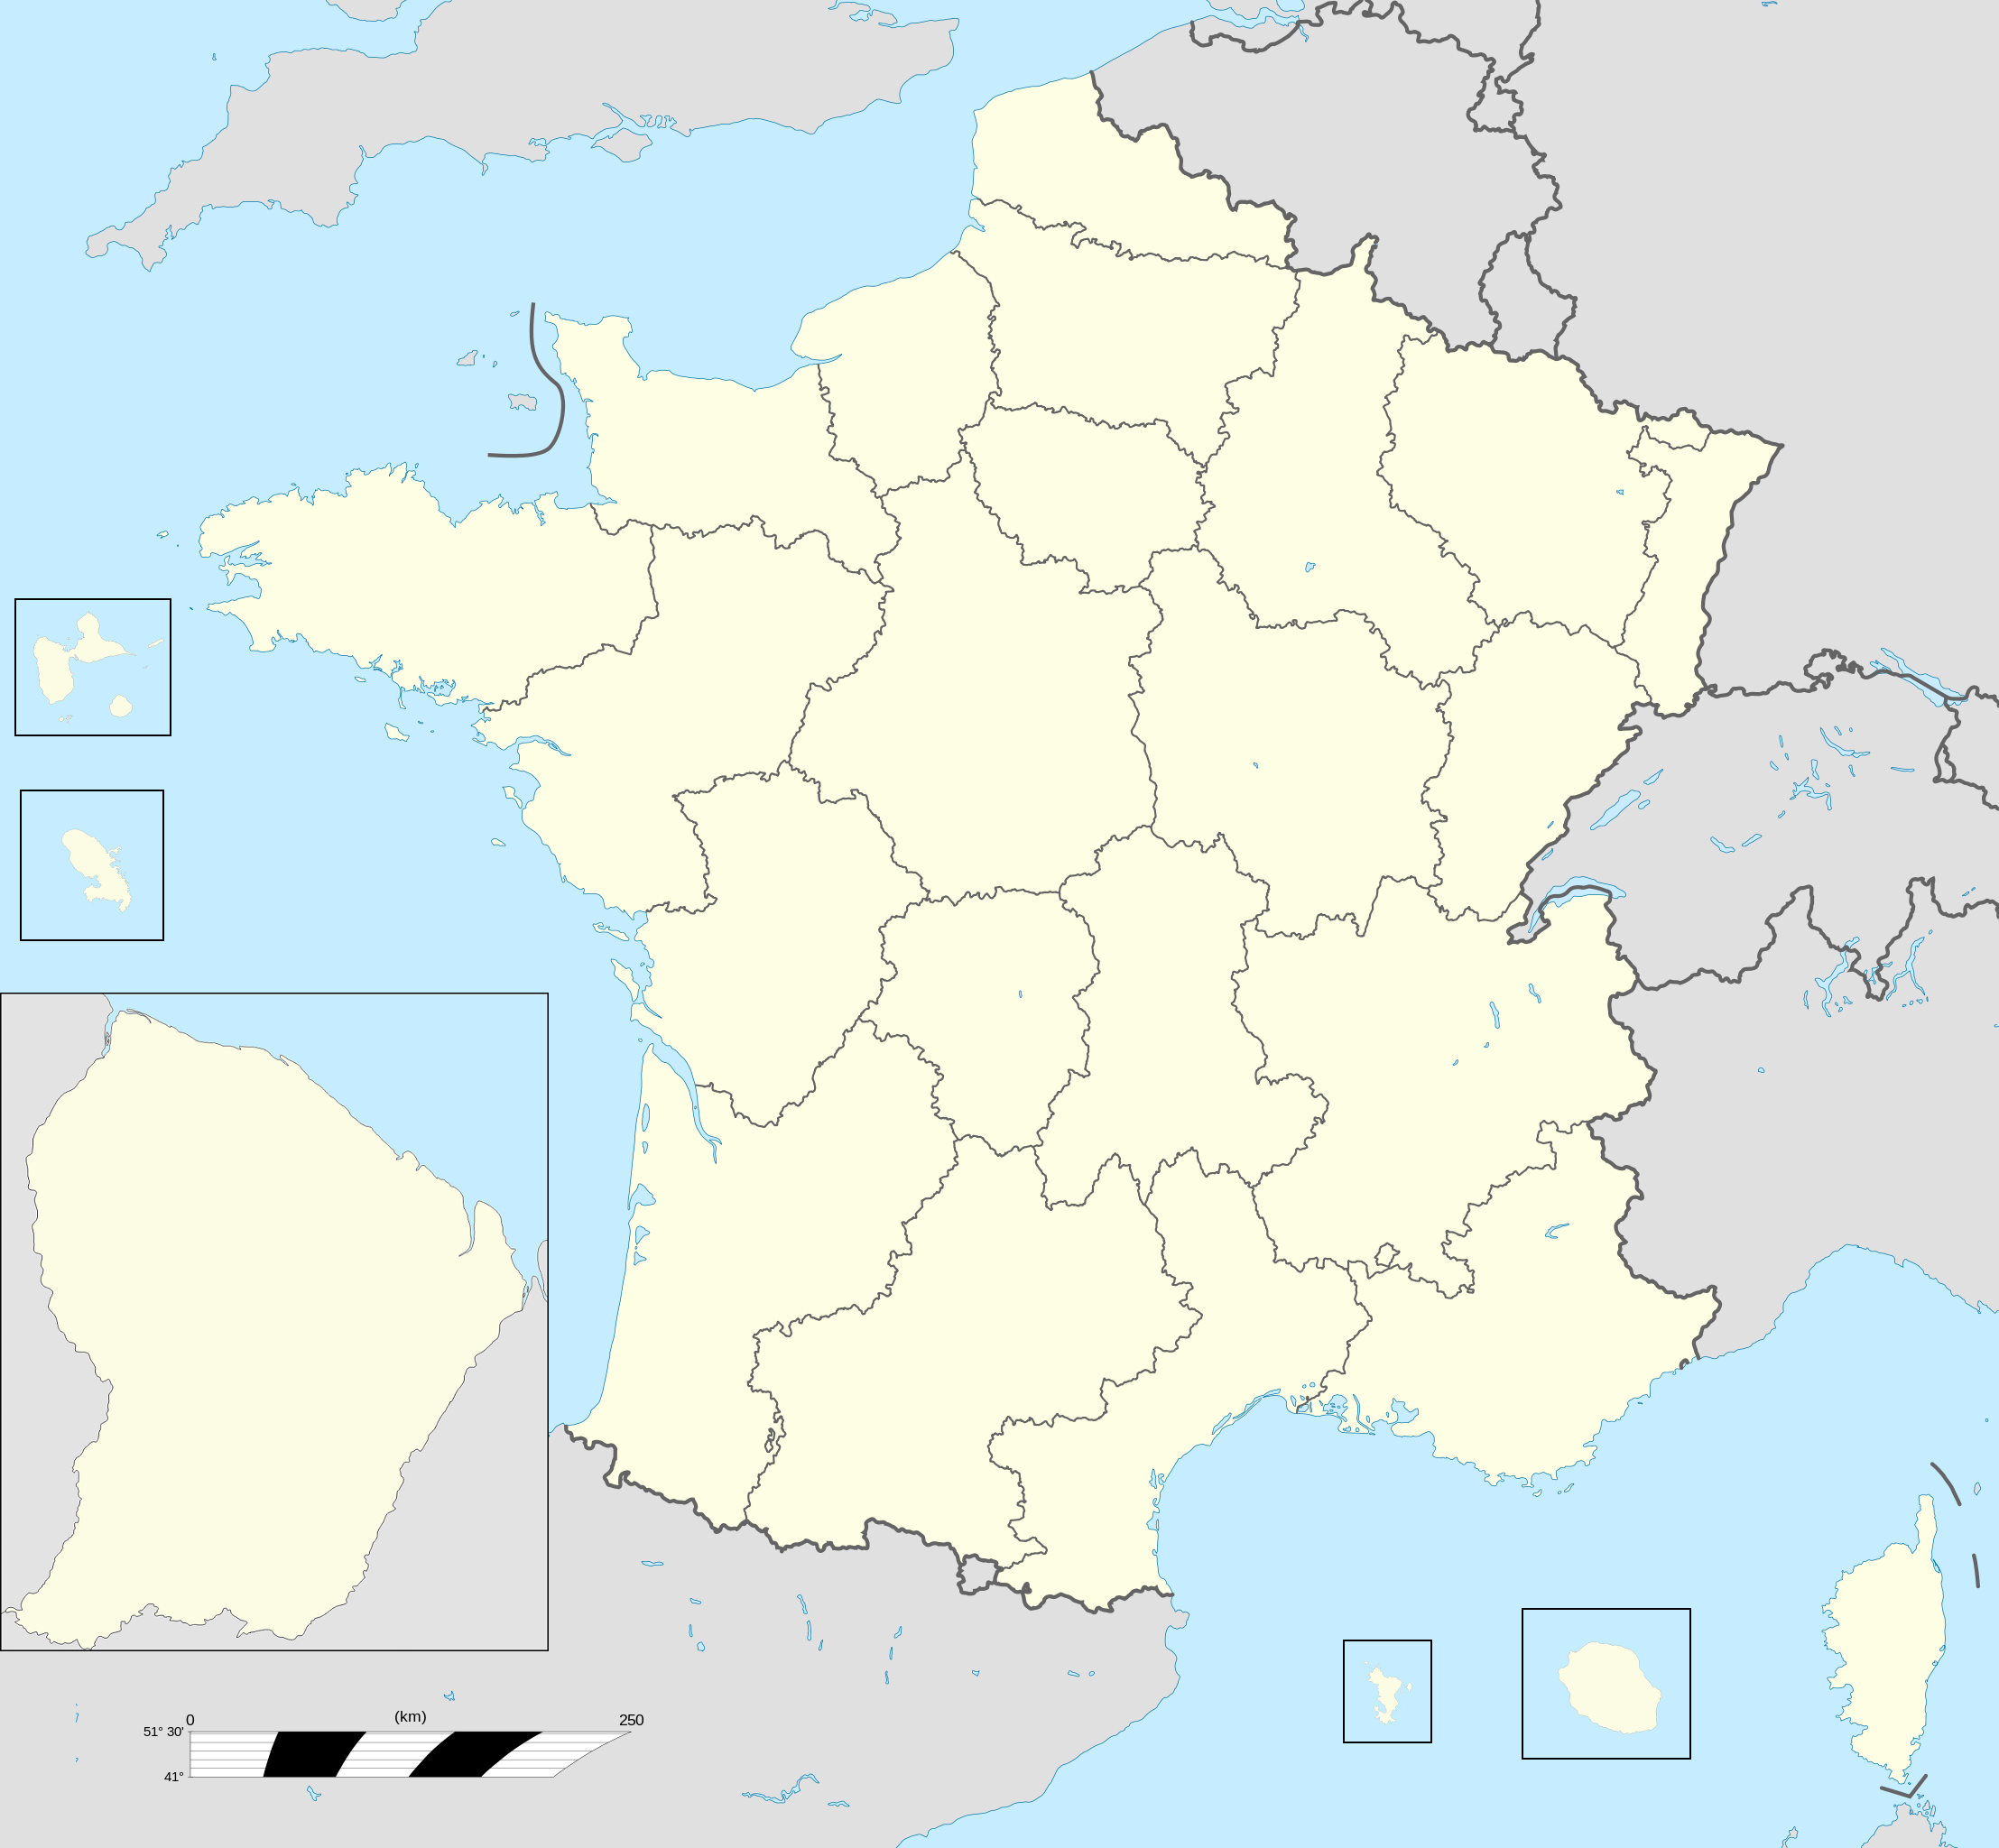 File:france Fond De Carte 27 Régions - Wikimedia Commons serapportantà Voir La Carte De France